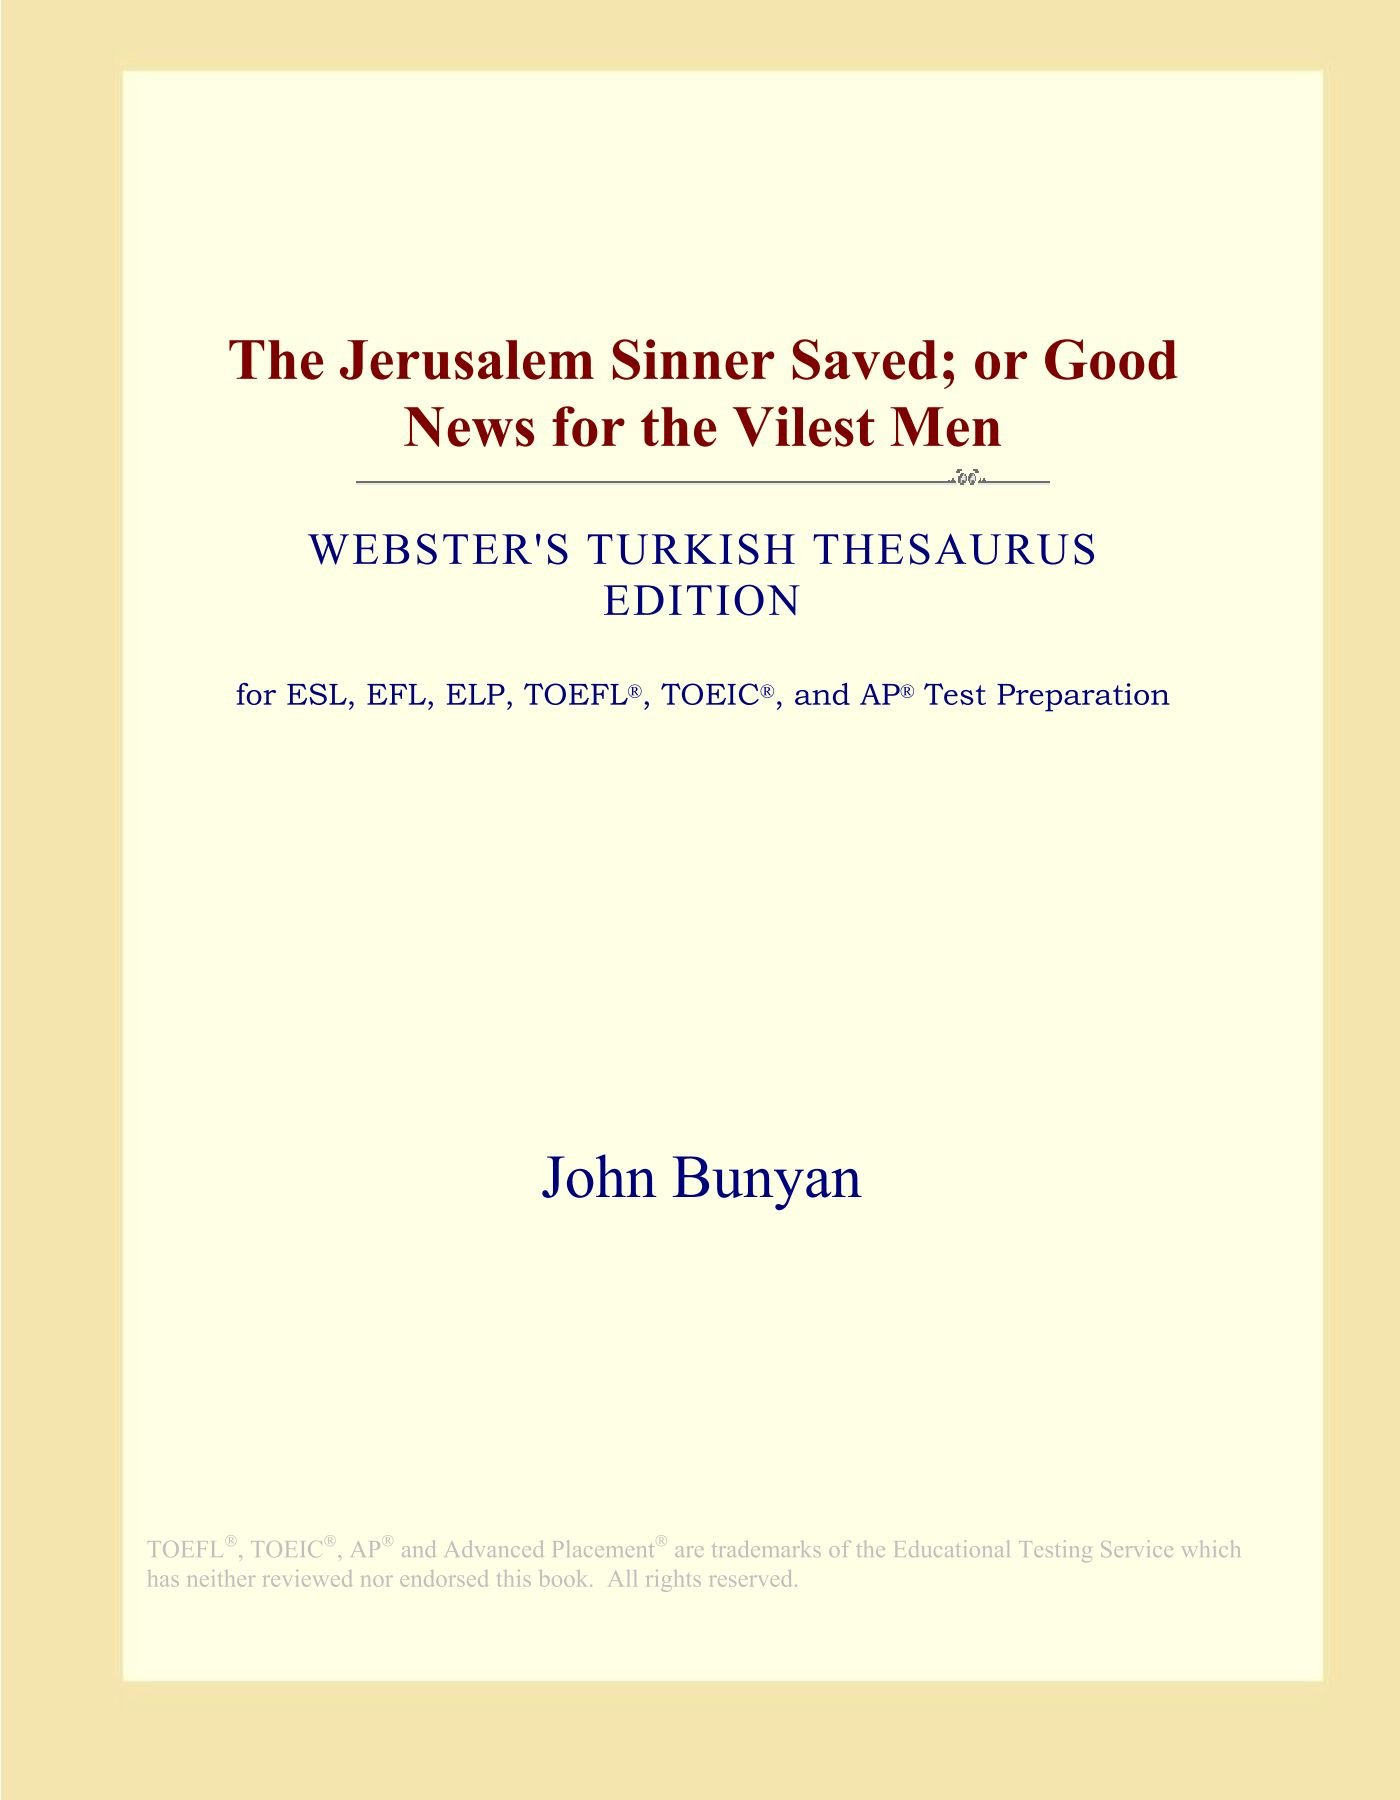 The Jerusalem Sinner Saved; or Good News for the Vilest Men (Webster's Turkish Thesaurus Edition) PDF